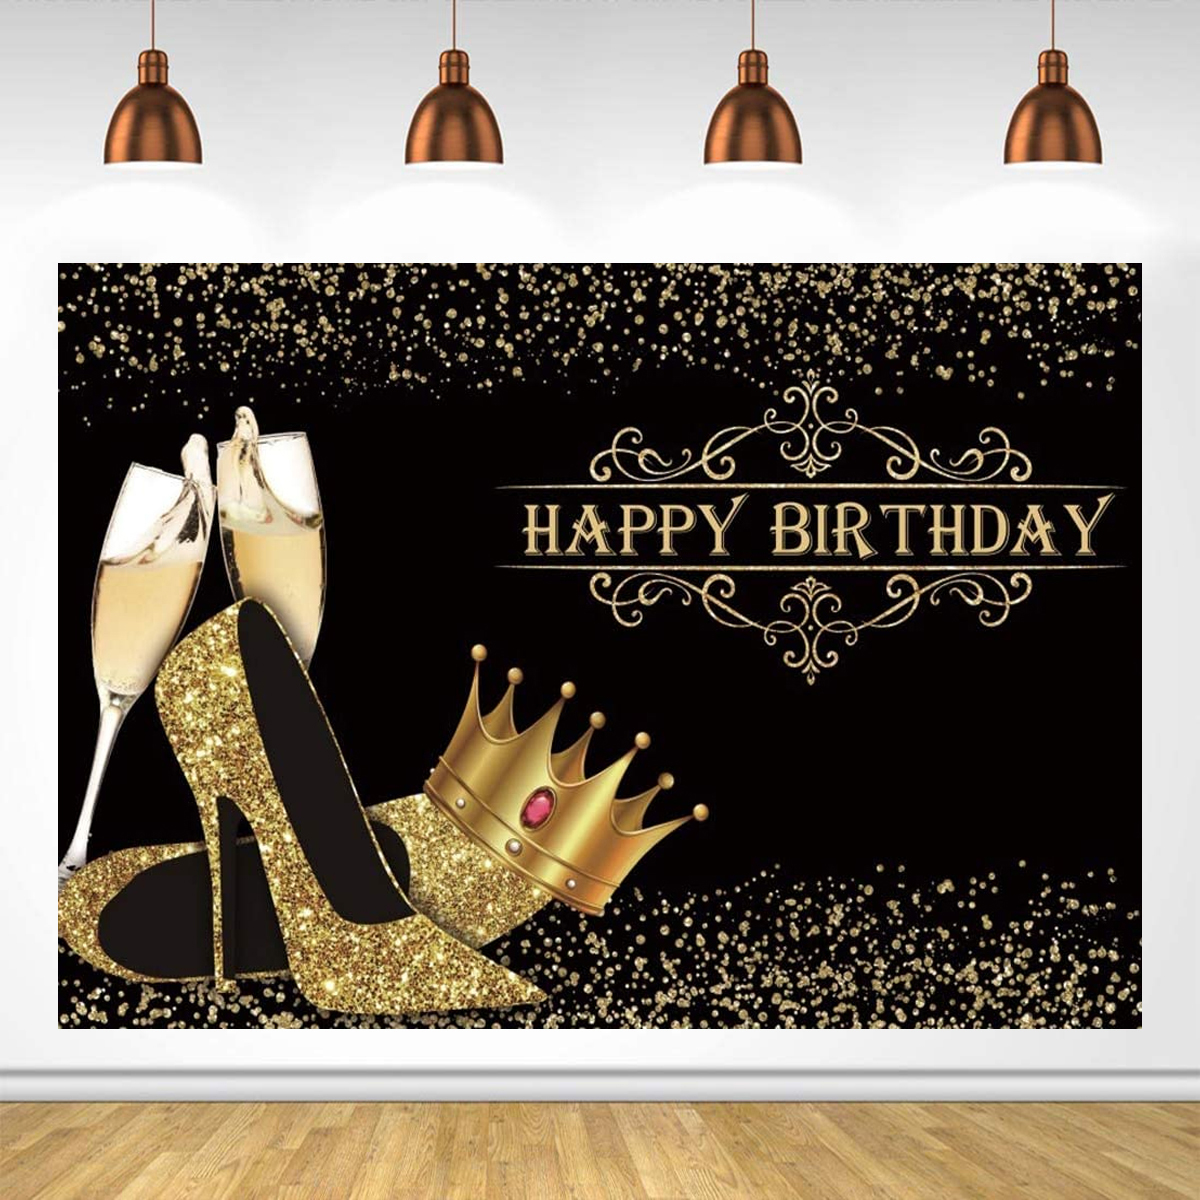 Happy Birthday Backdrop Lady Birthday Prom Party Background Shiny Golden Crown High Heel Party Banner Birthday Photo Studio Props